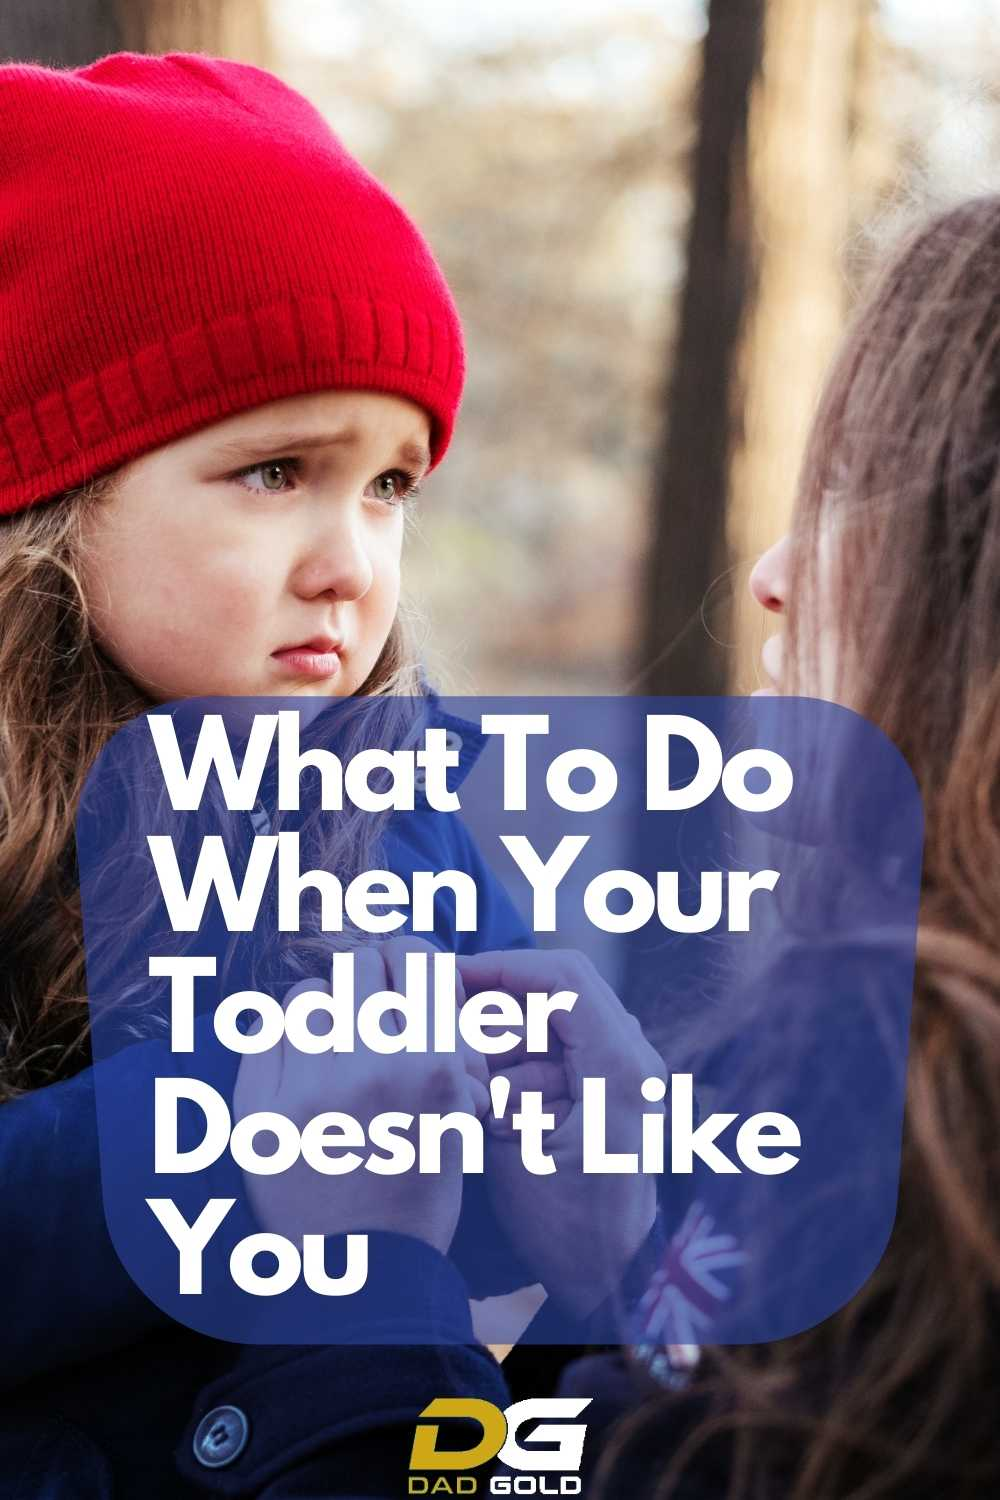 What To Do When Your Toddler Doesn't Like You